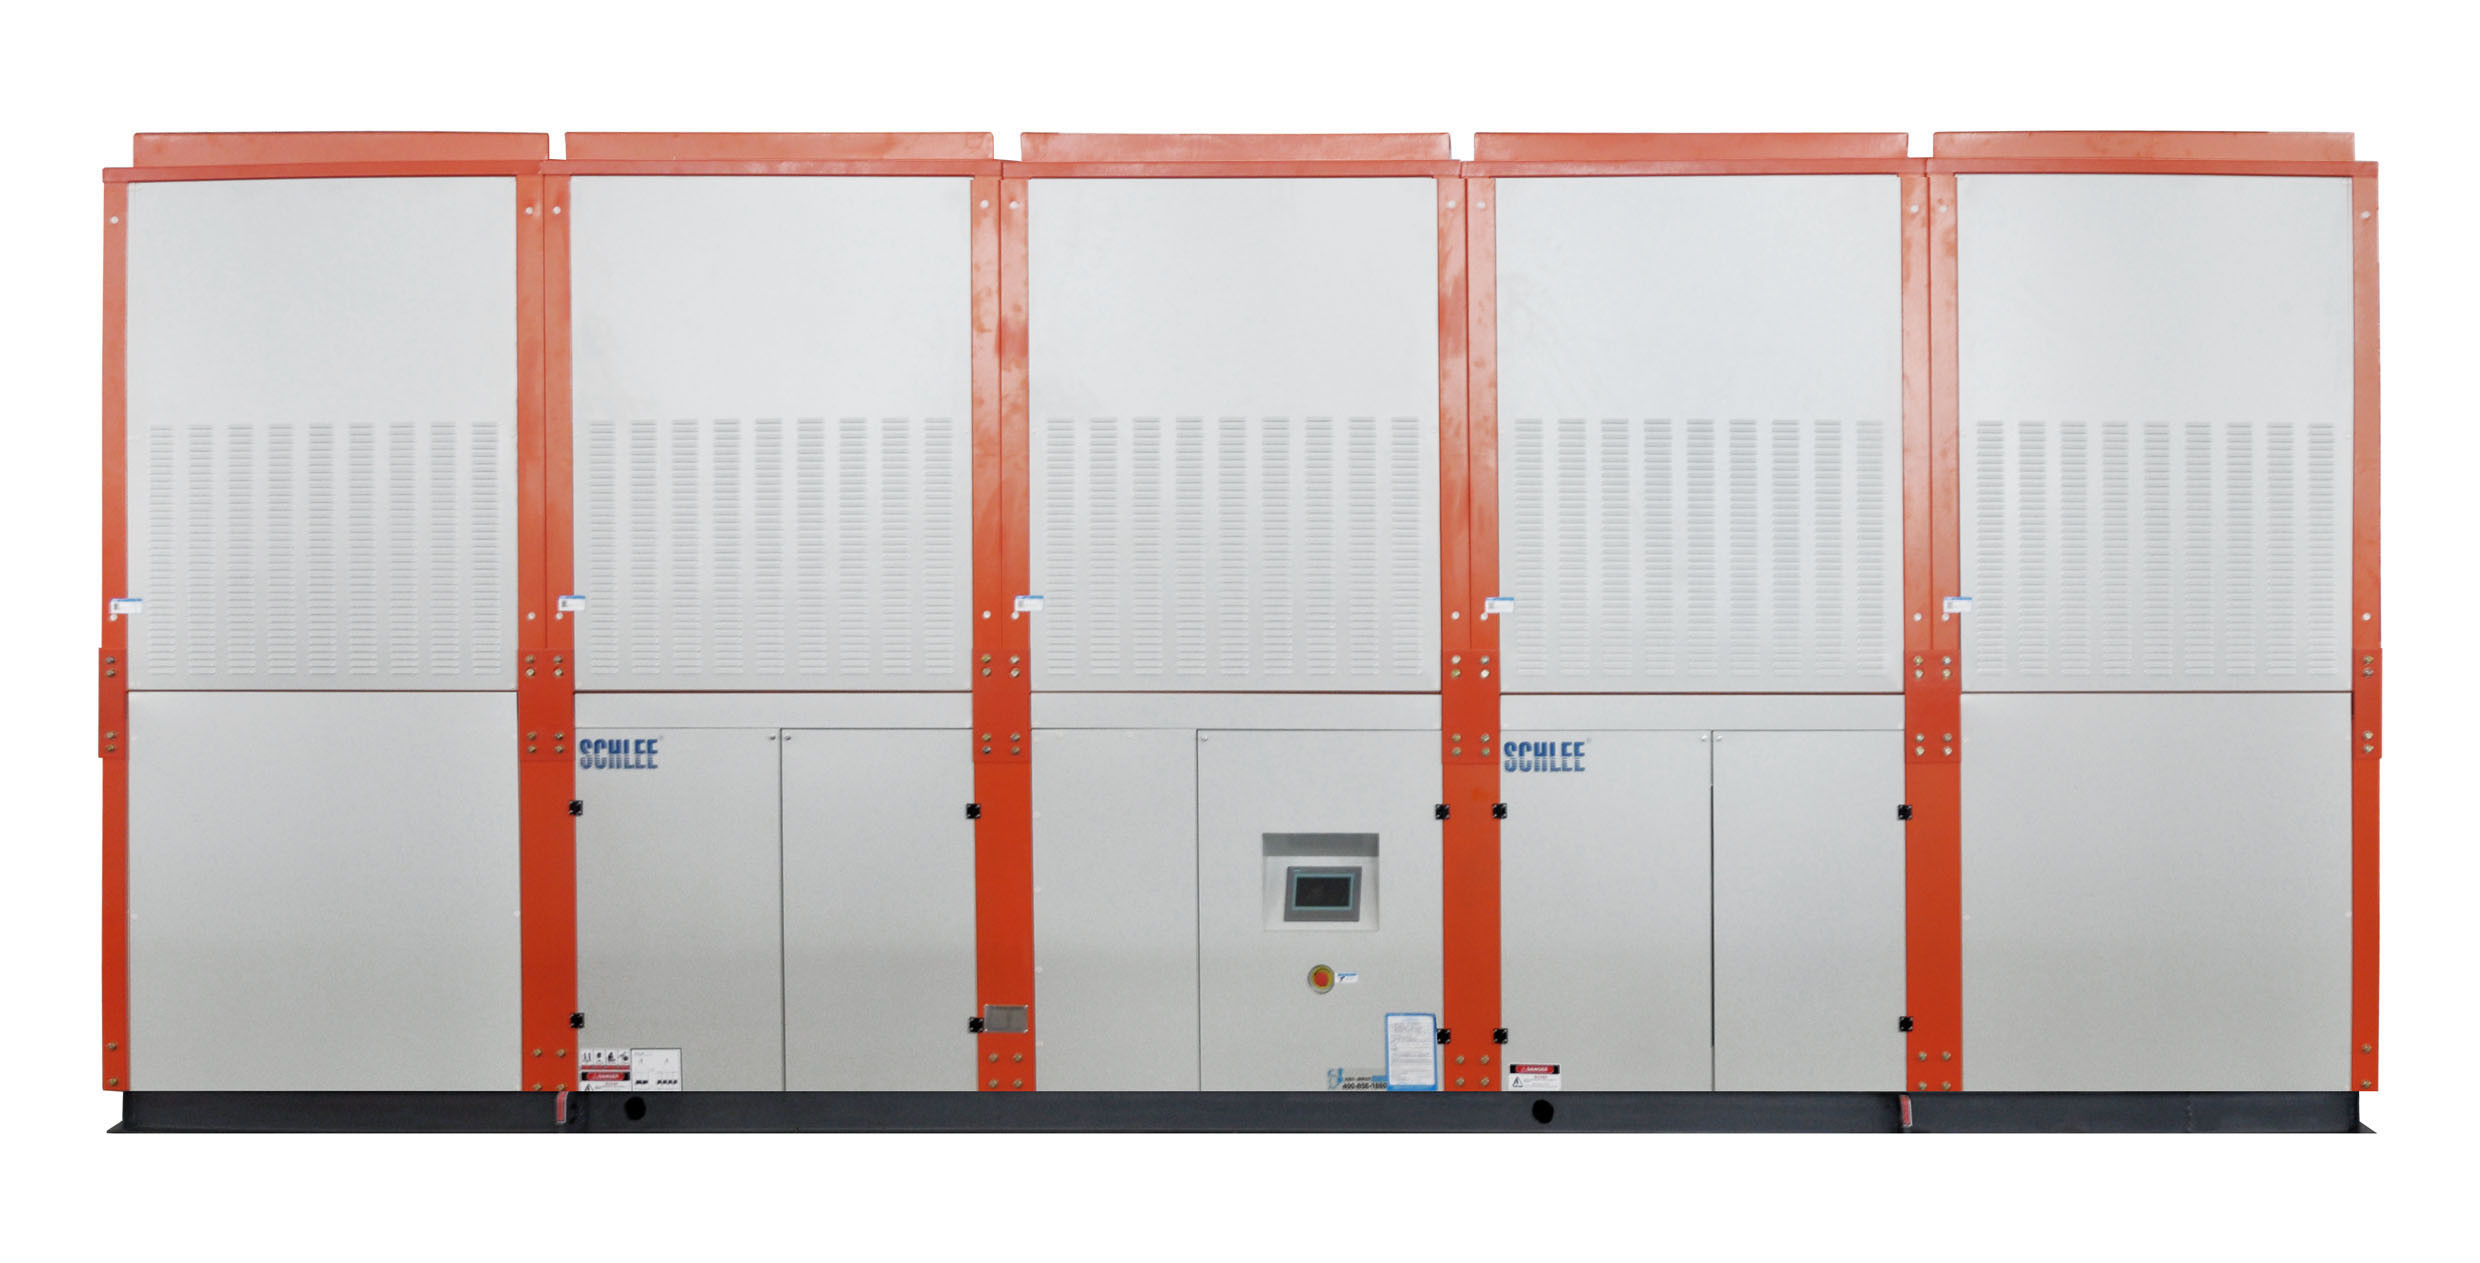 640kw M640zh4 Intergrated Industrial Evaporative Cooled Water Chiller